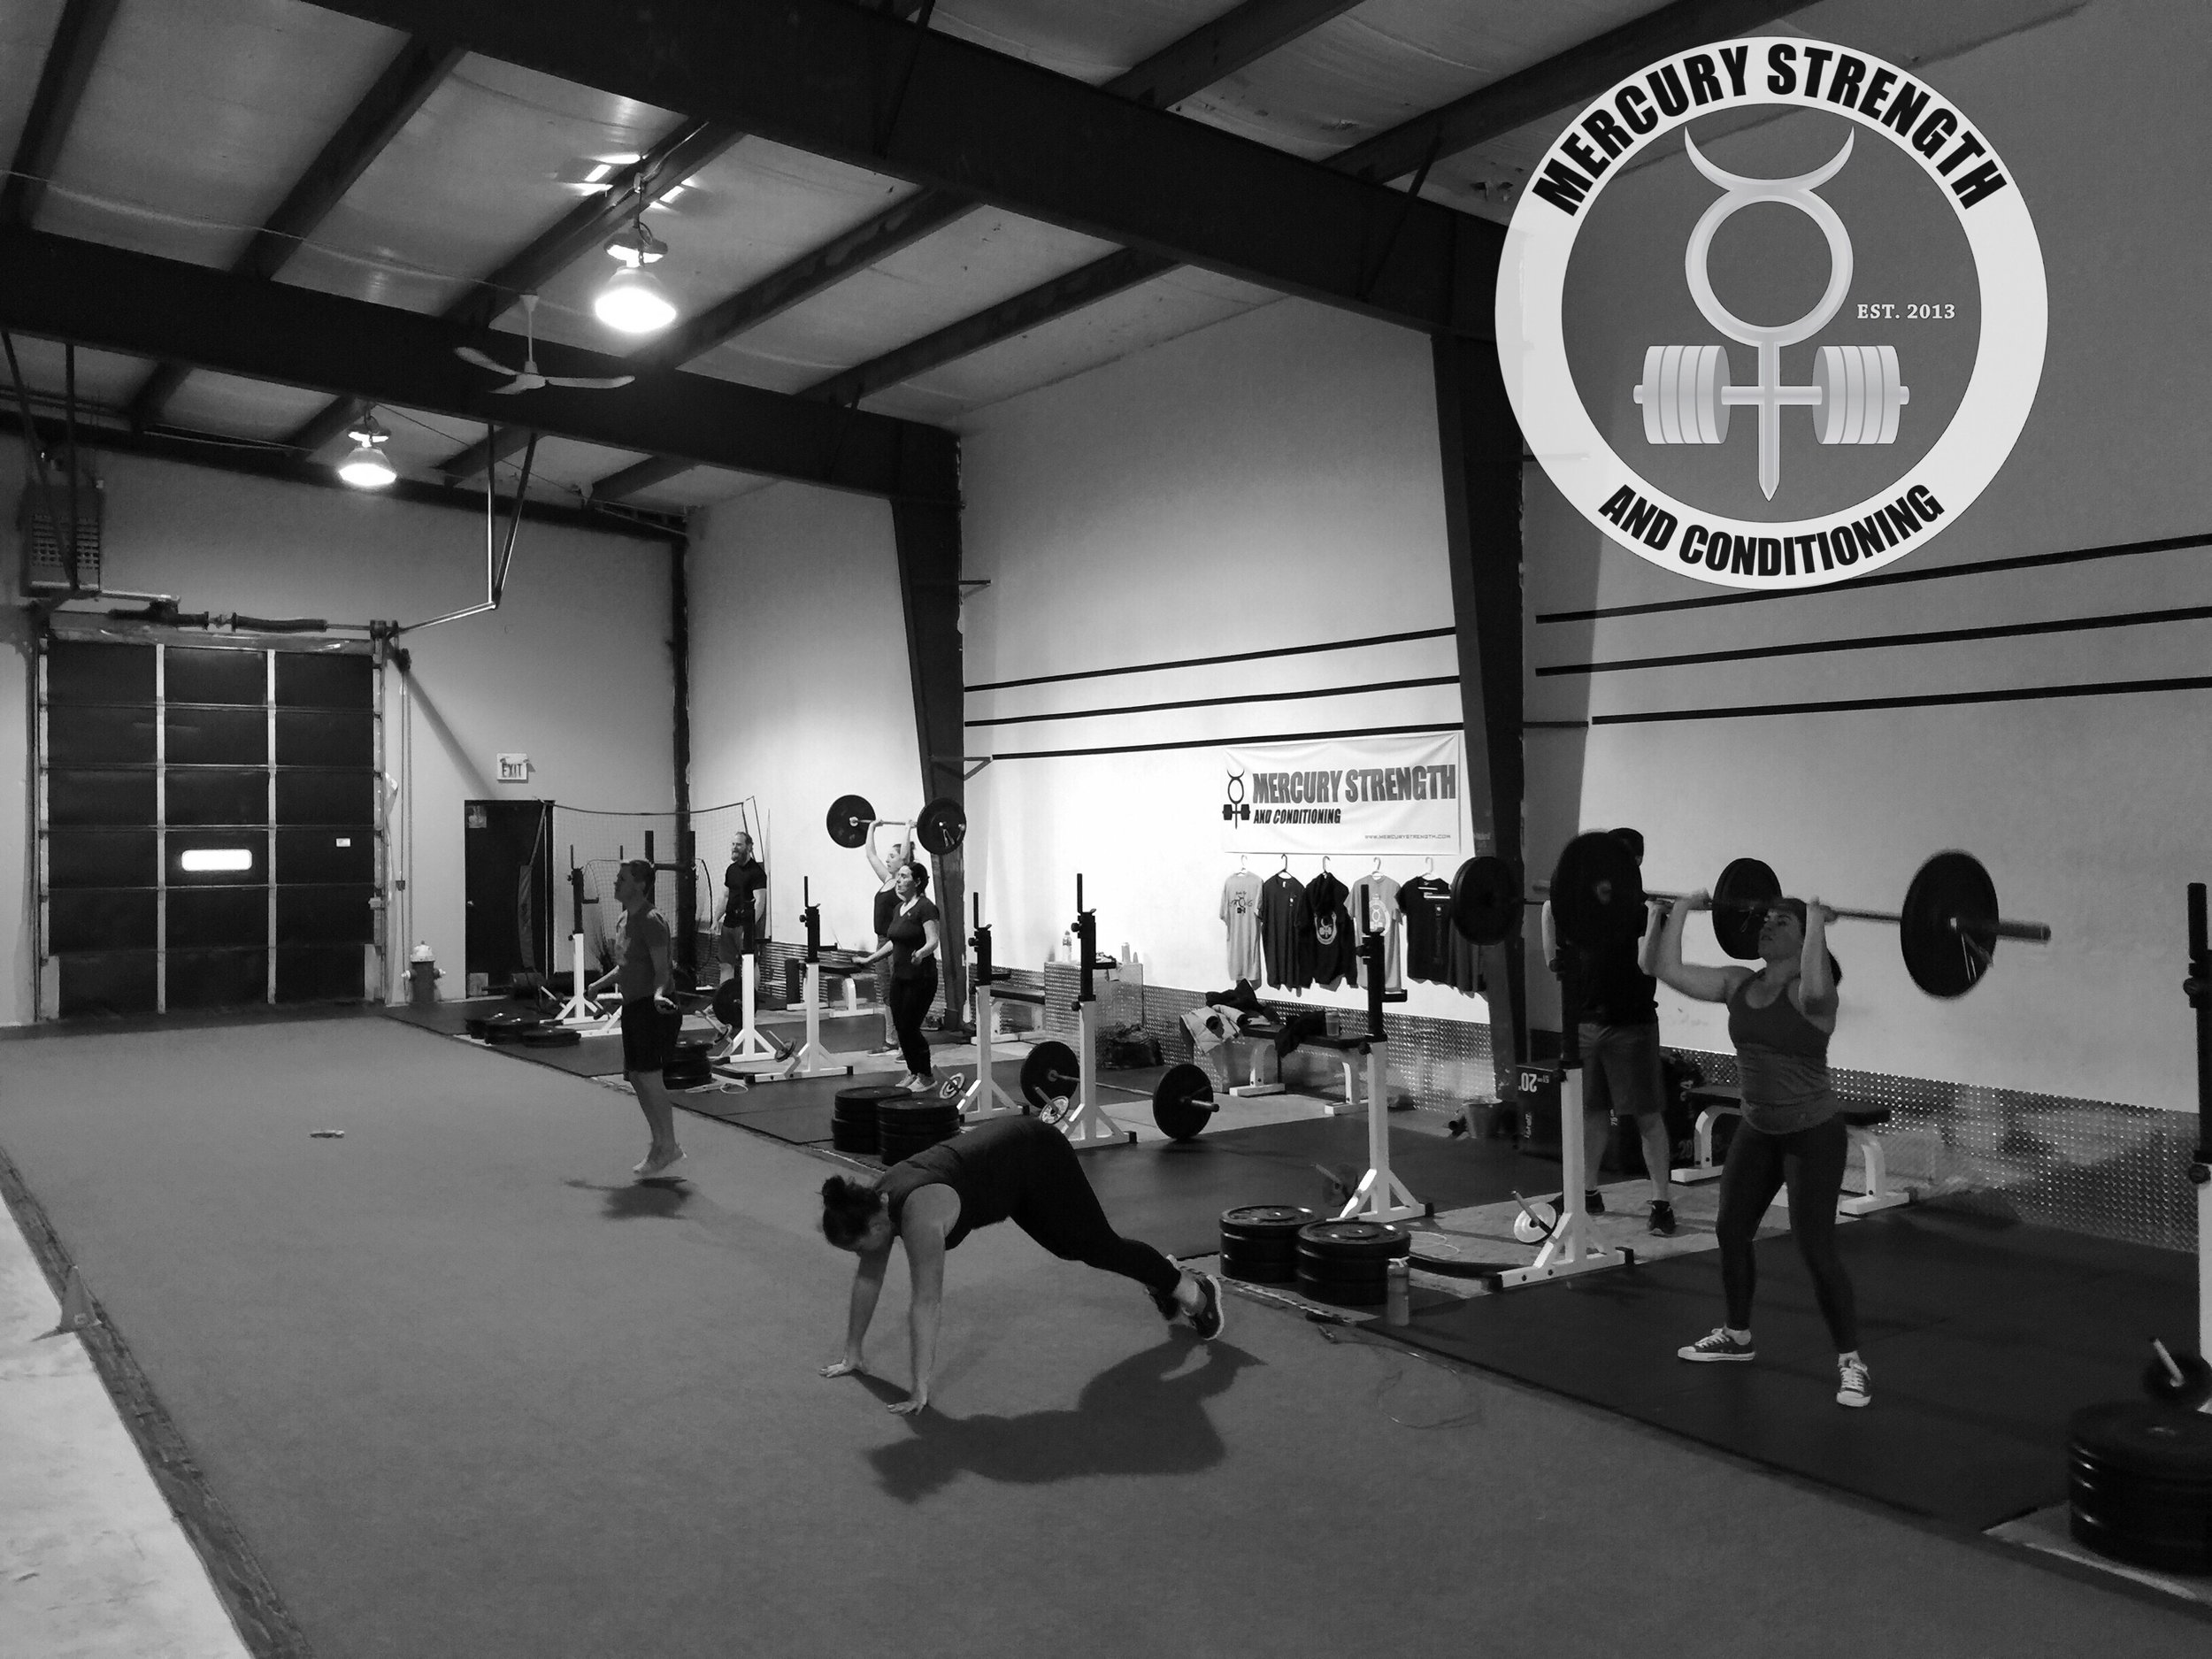 The 16:45 crew cranking out some thrusters and burpees